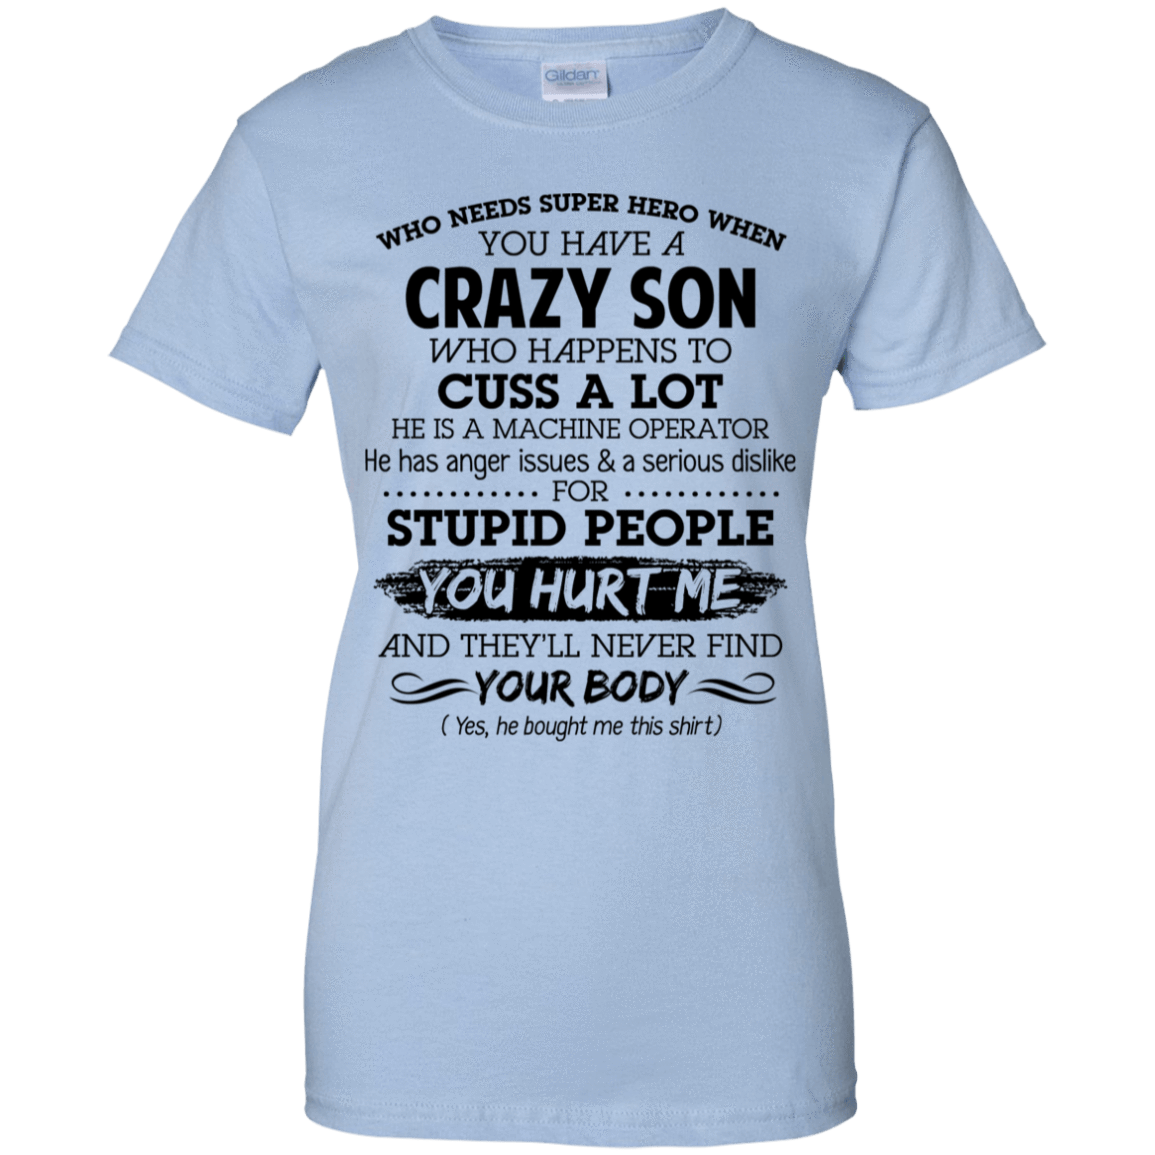 Have Crazy Son He Is A Machine Operator Mother's Day Gift 939-9257-73619439-44716 - Tee Ript